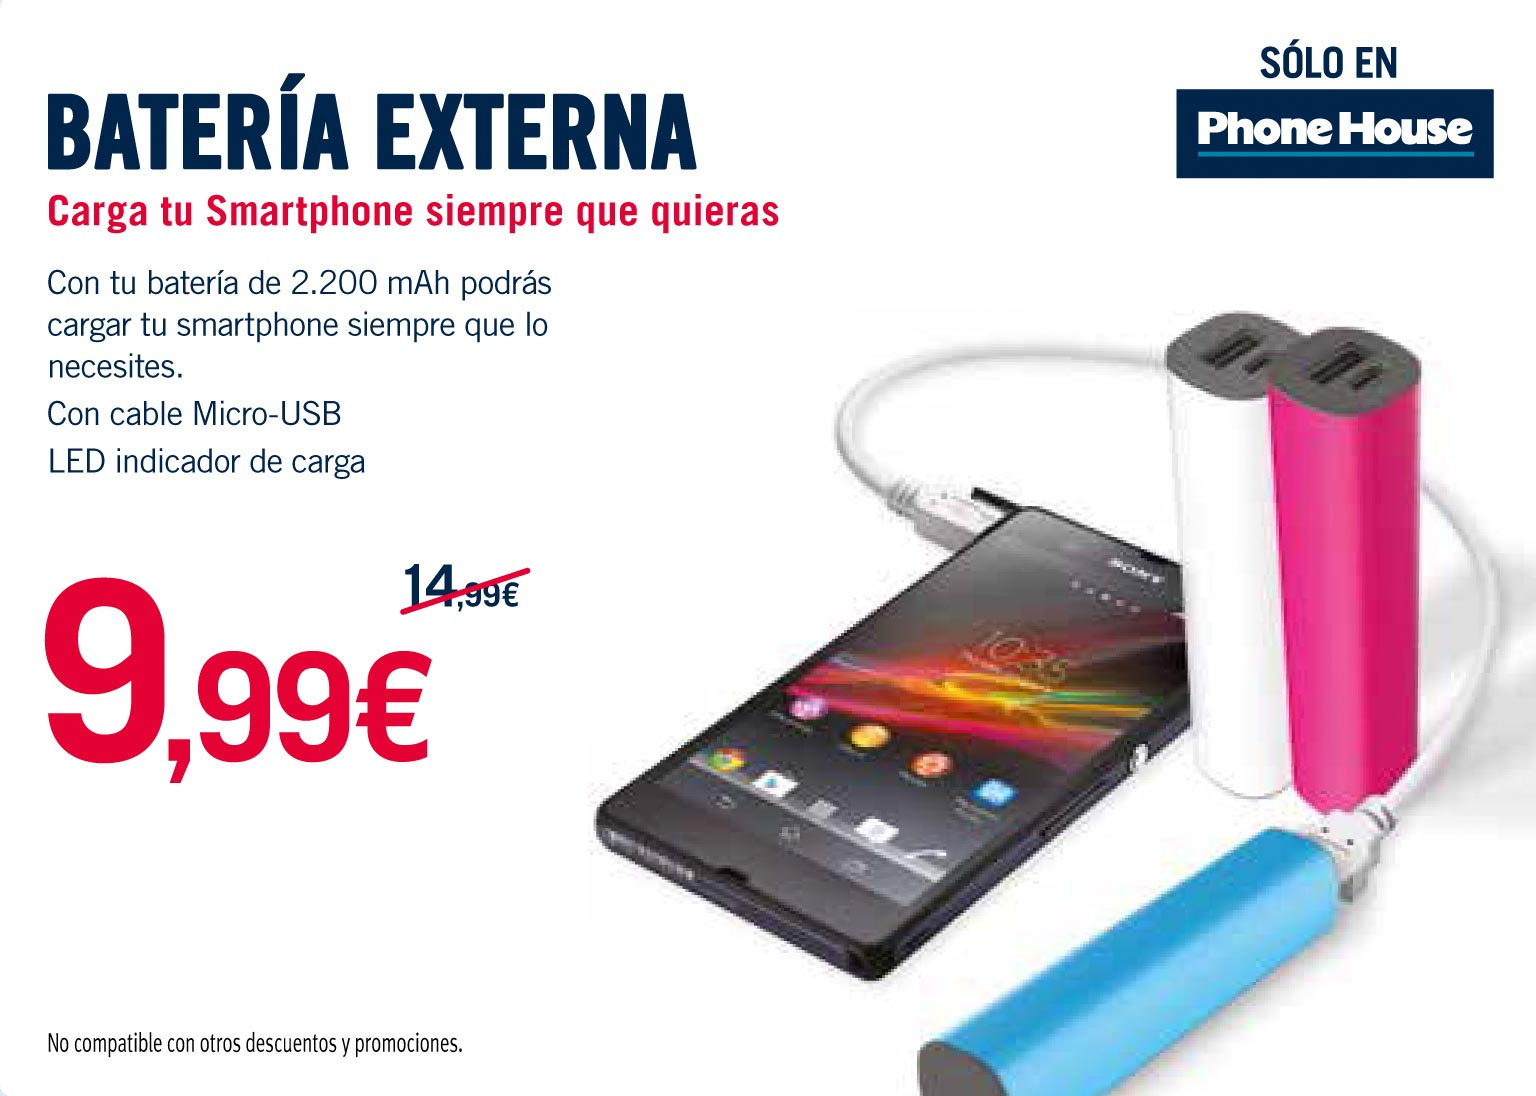 Phone House Moviles Libres Catalogo The Phone House Granada Moviles Libres